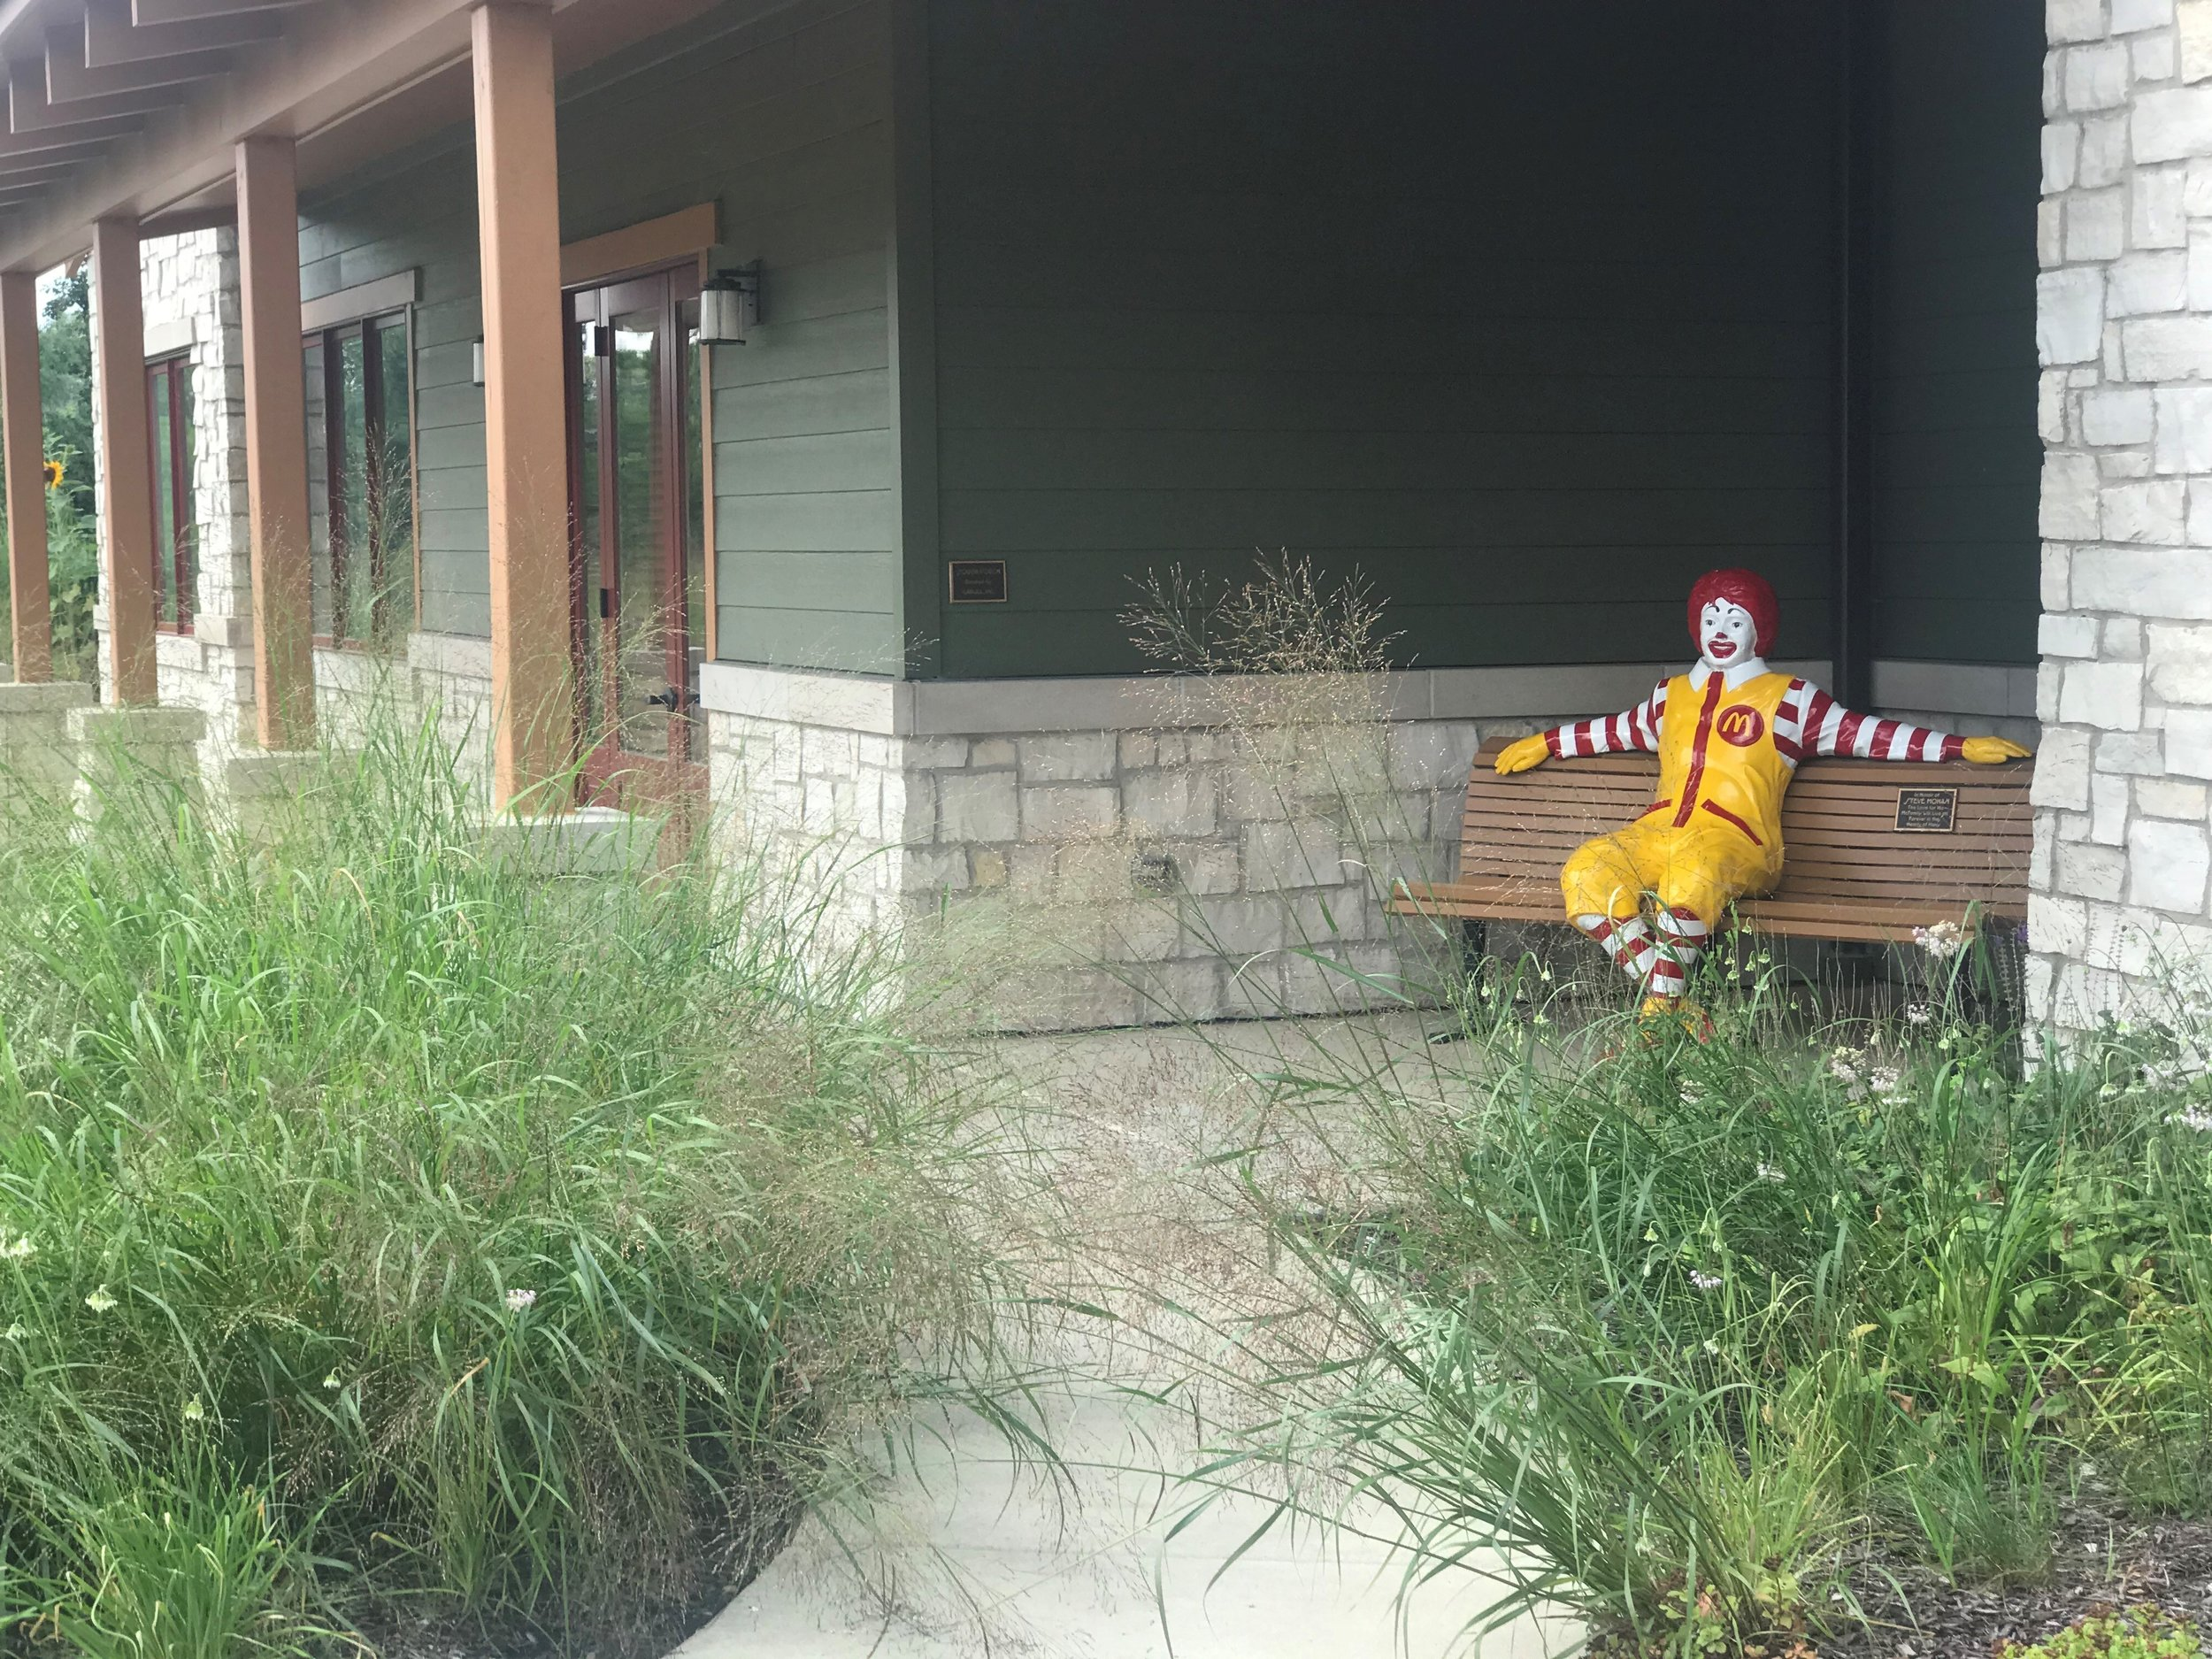 Ronald McDonald greets families from the front porch of the house in Winfield